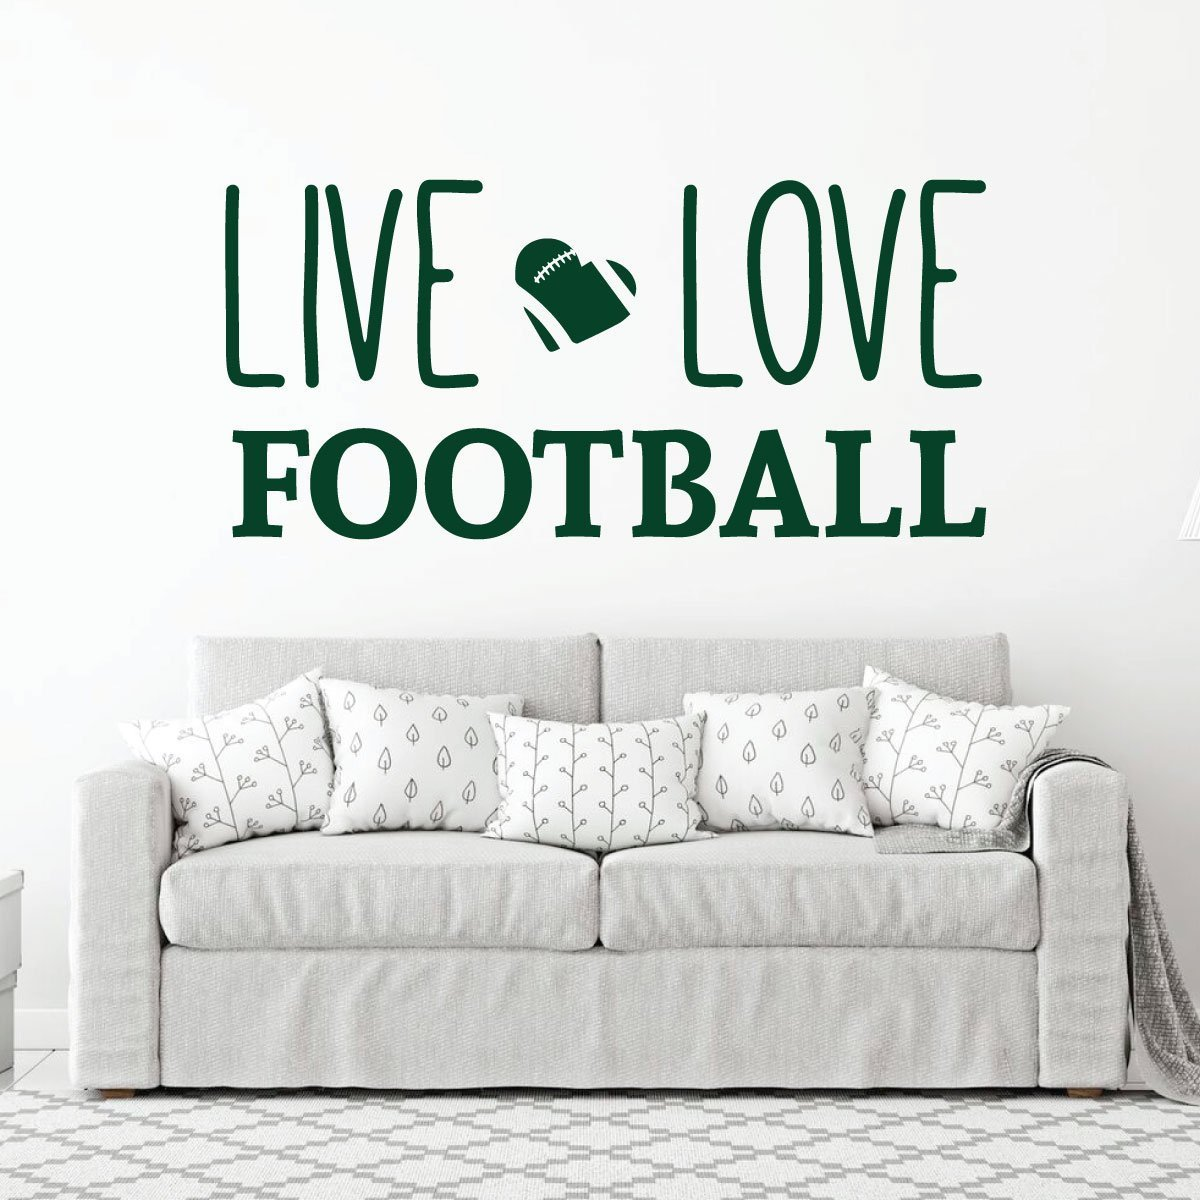 Live Love Football Wall Decal - Vinyl Art Sticker for Bedroom, Home Decor, Playroom or Game Room Decoration by CustomVinylDecor (Image #4)